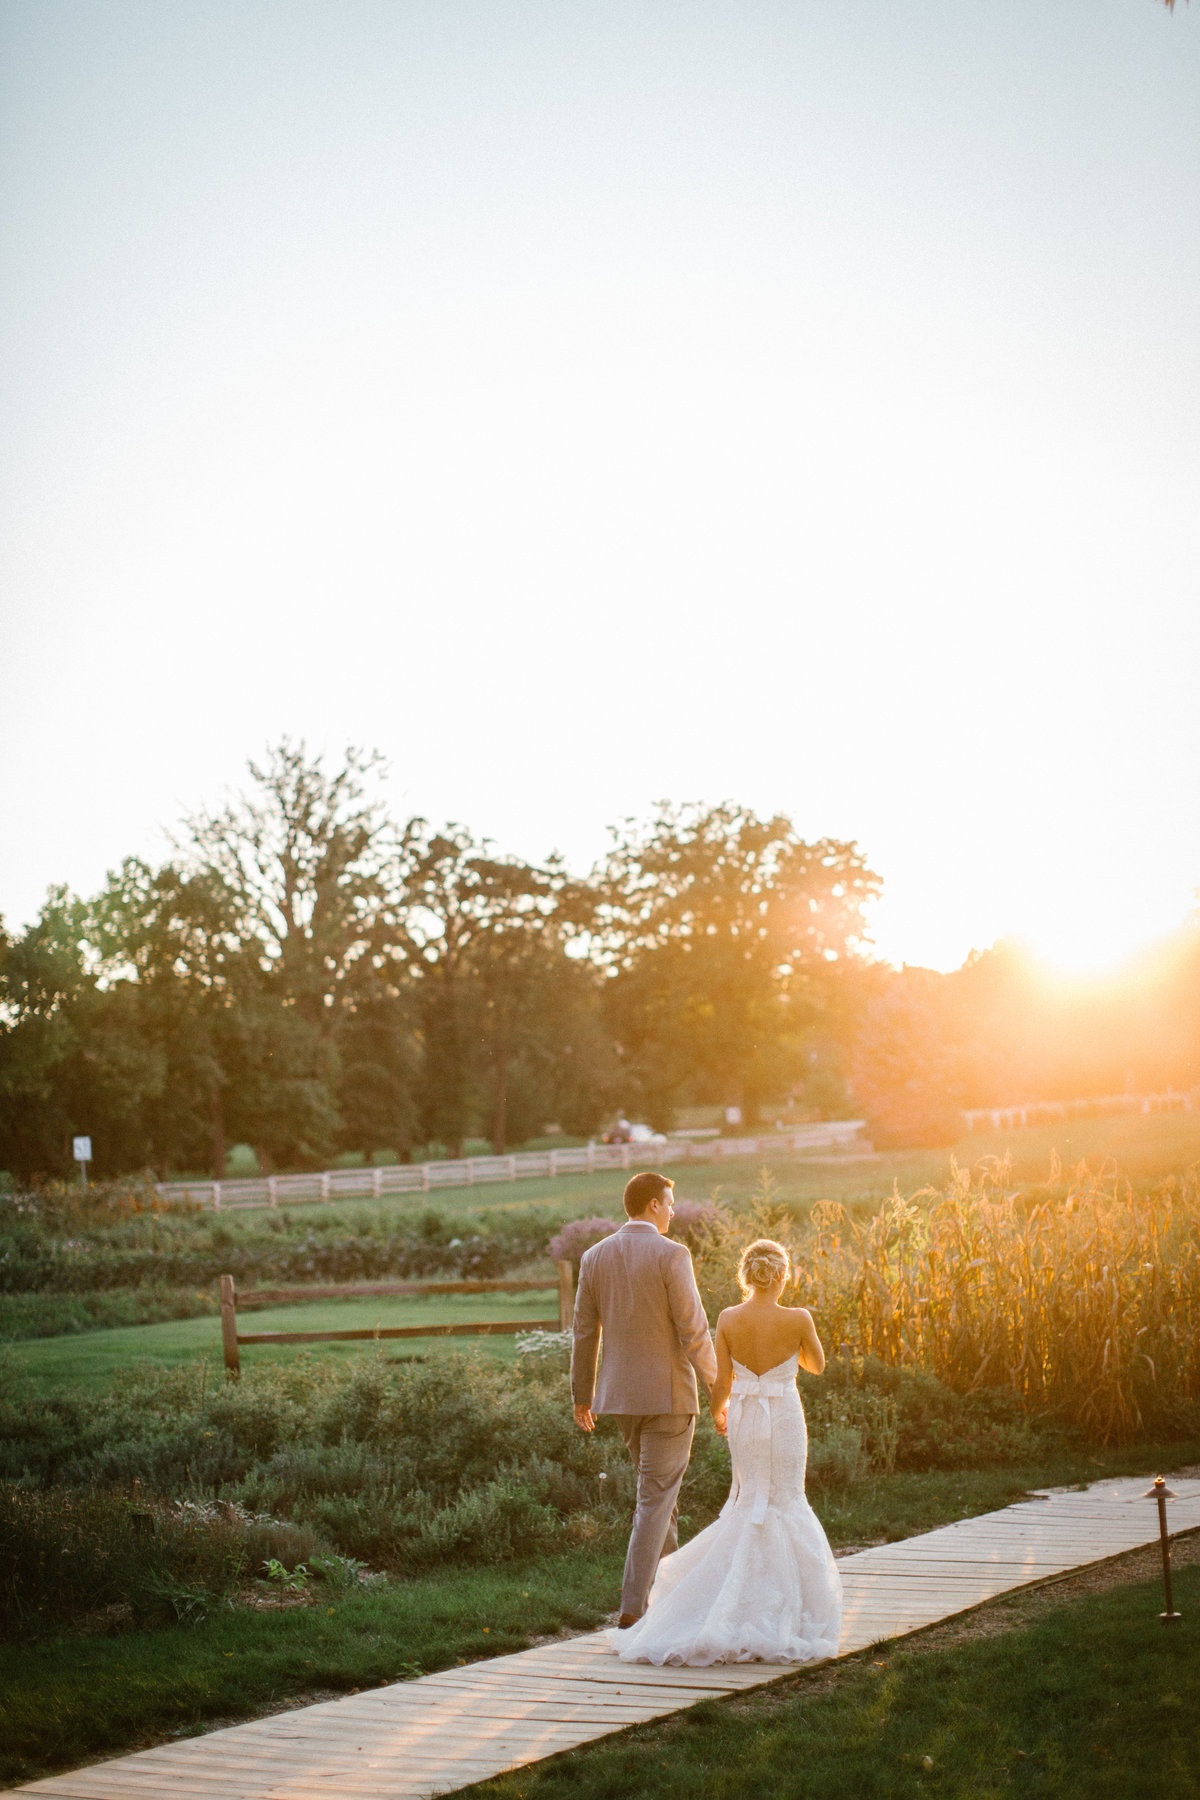 Mishelle Lamarand PhotographyMichigan Wedding PhotographerDetroit Wedding Photographer (81)